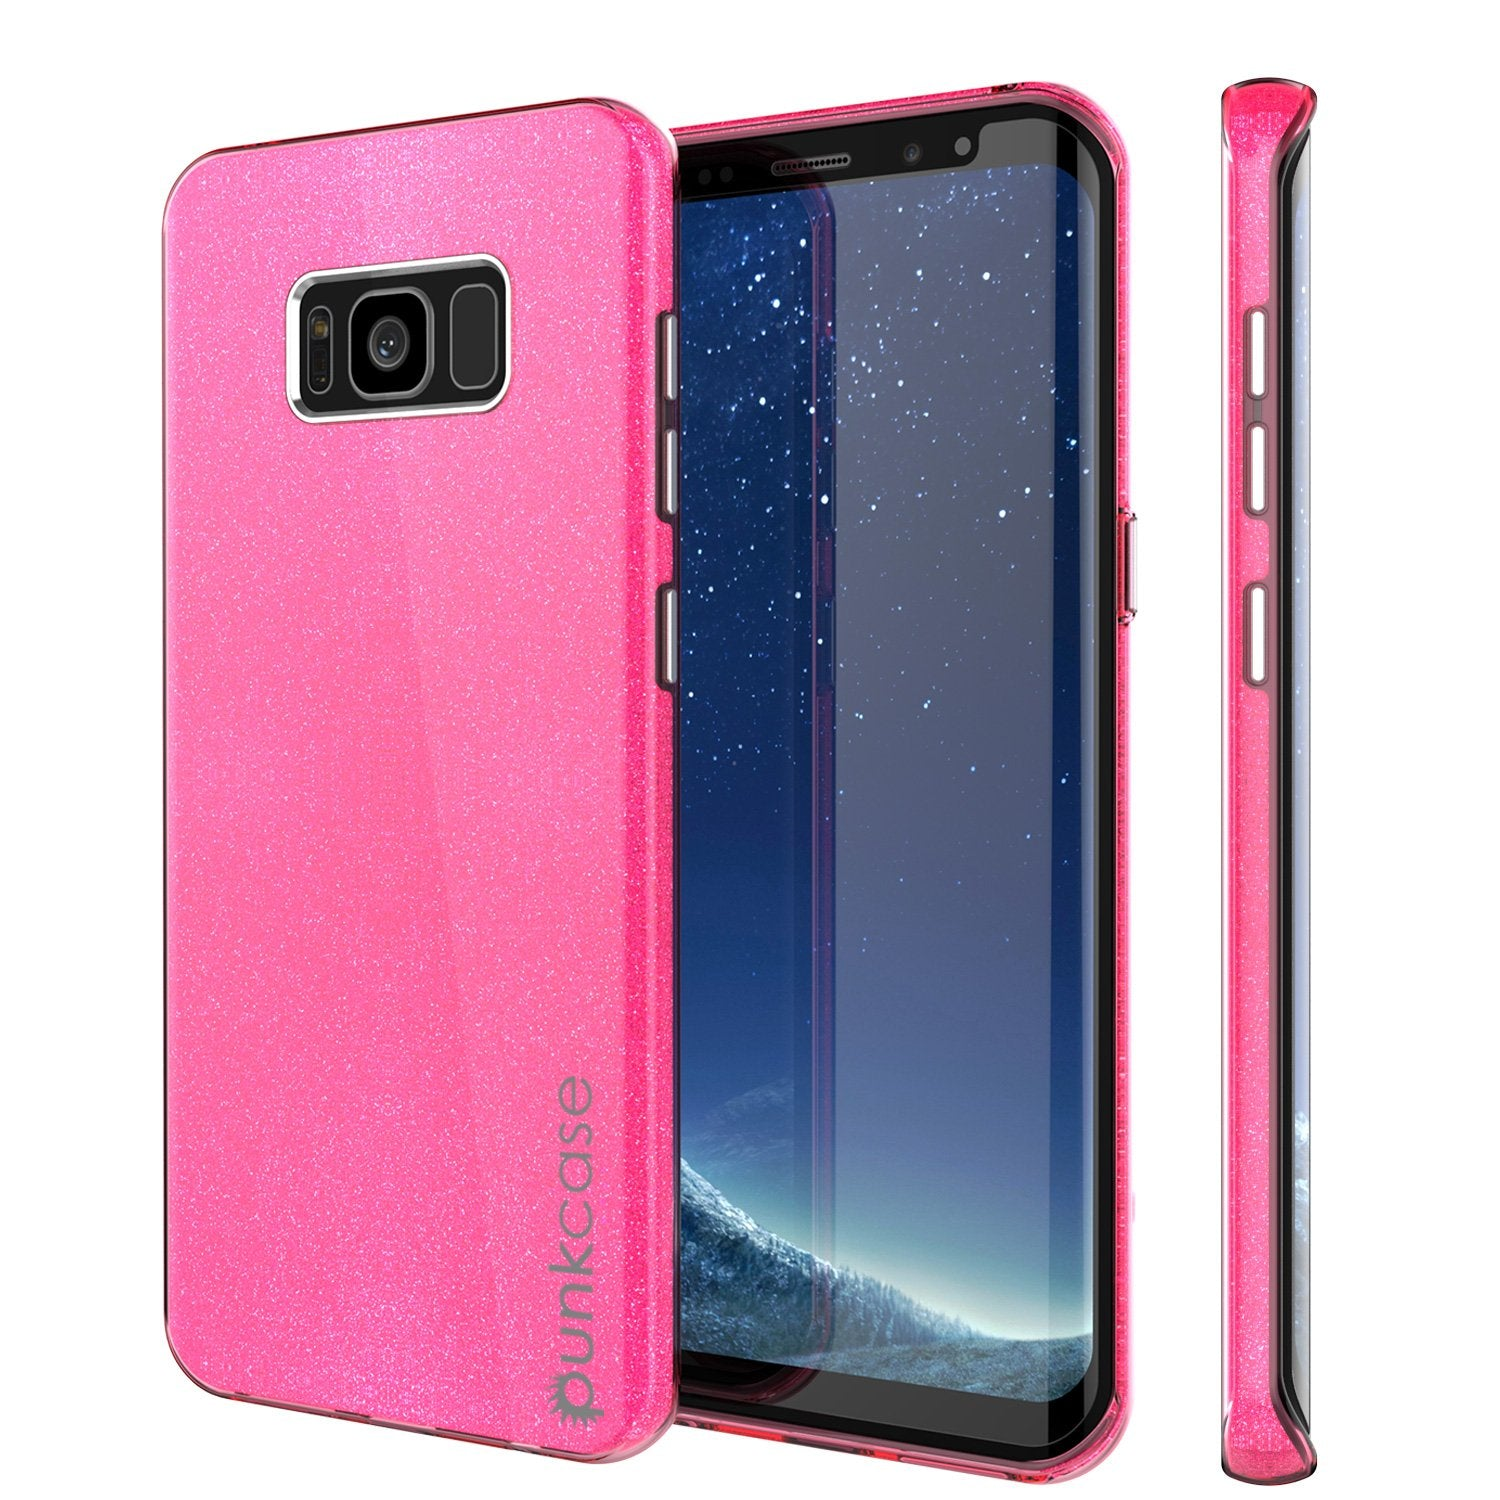 Galaxy S8 Case, Punkcase Galactic 2.0 Series Ultra Slim Protective Armor Cover [Pink]